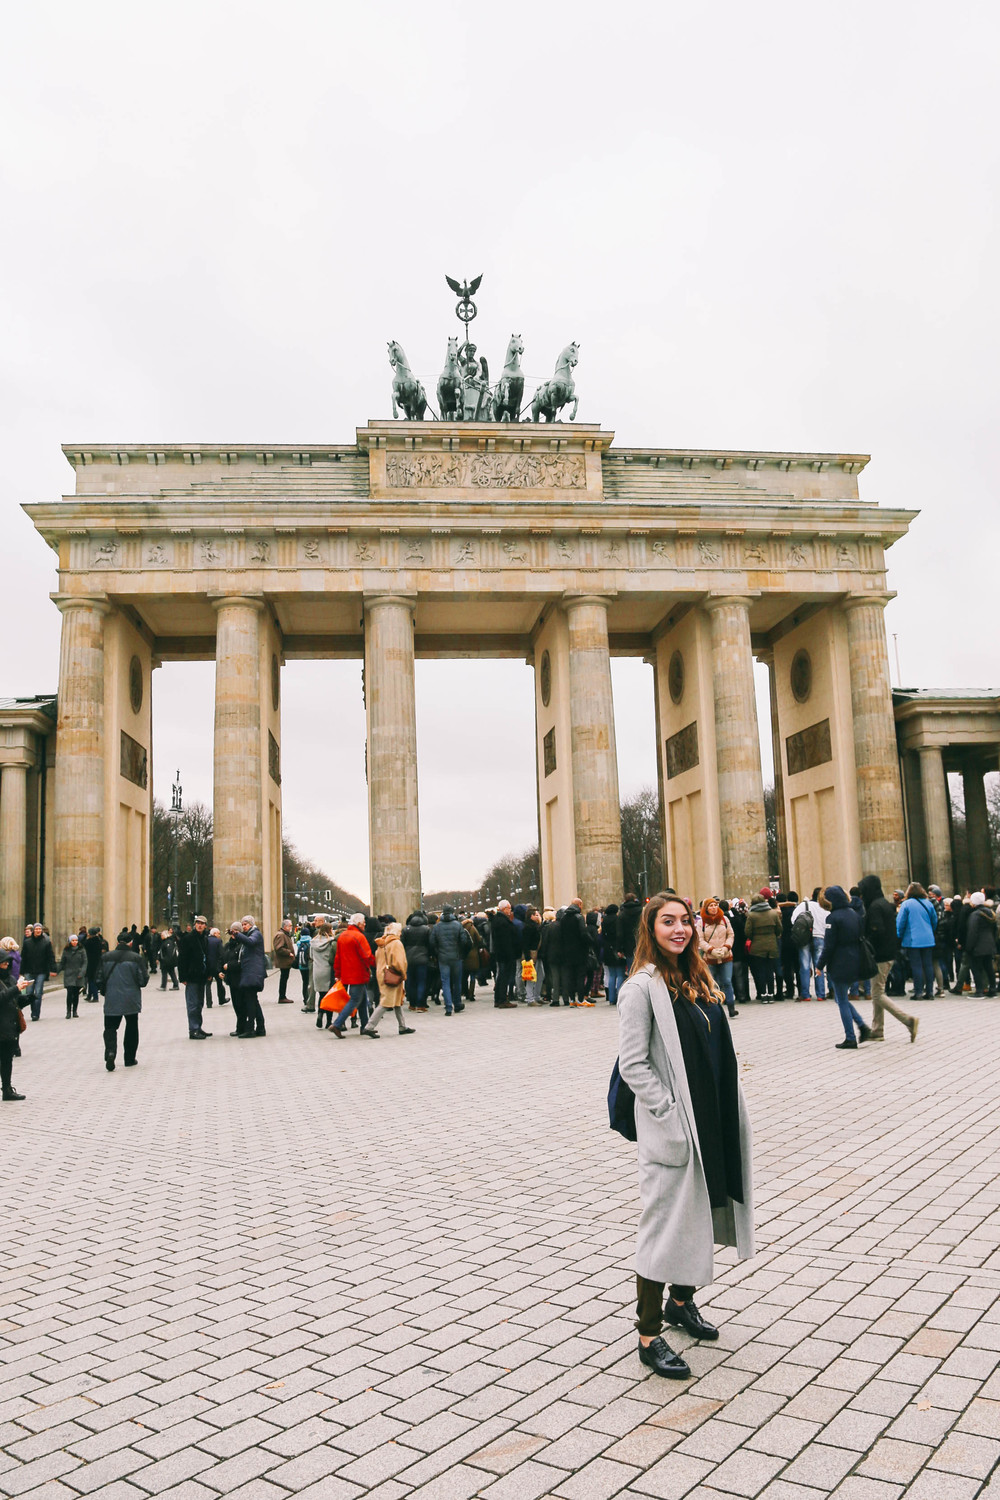 Exploring Berlin in style - more at www.MarinaSays.com